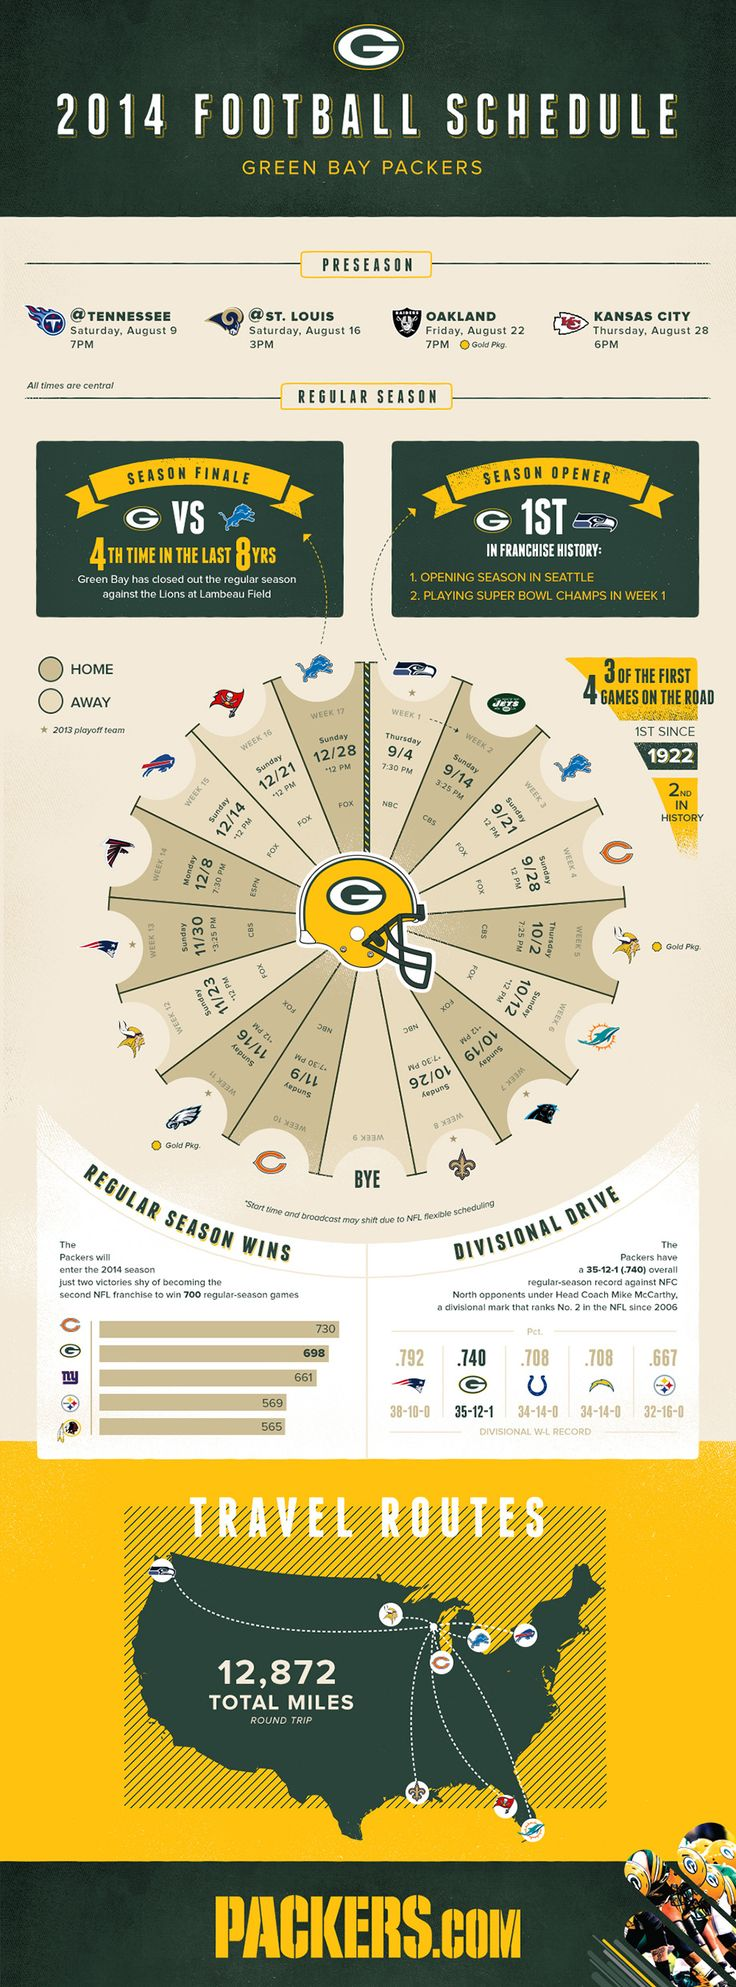 Green Bay Packers 2014 Schedule Infographic | Lemonly